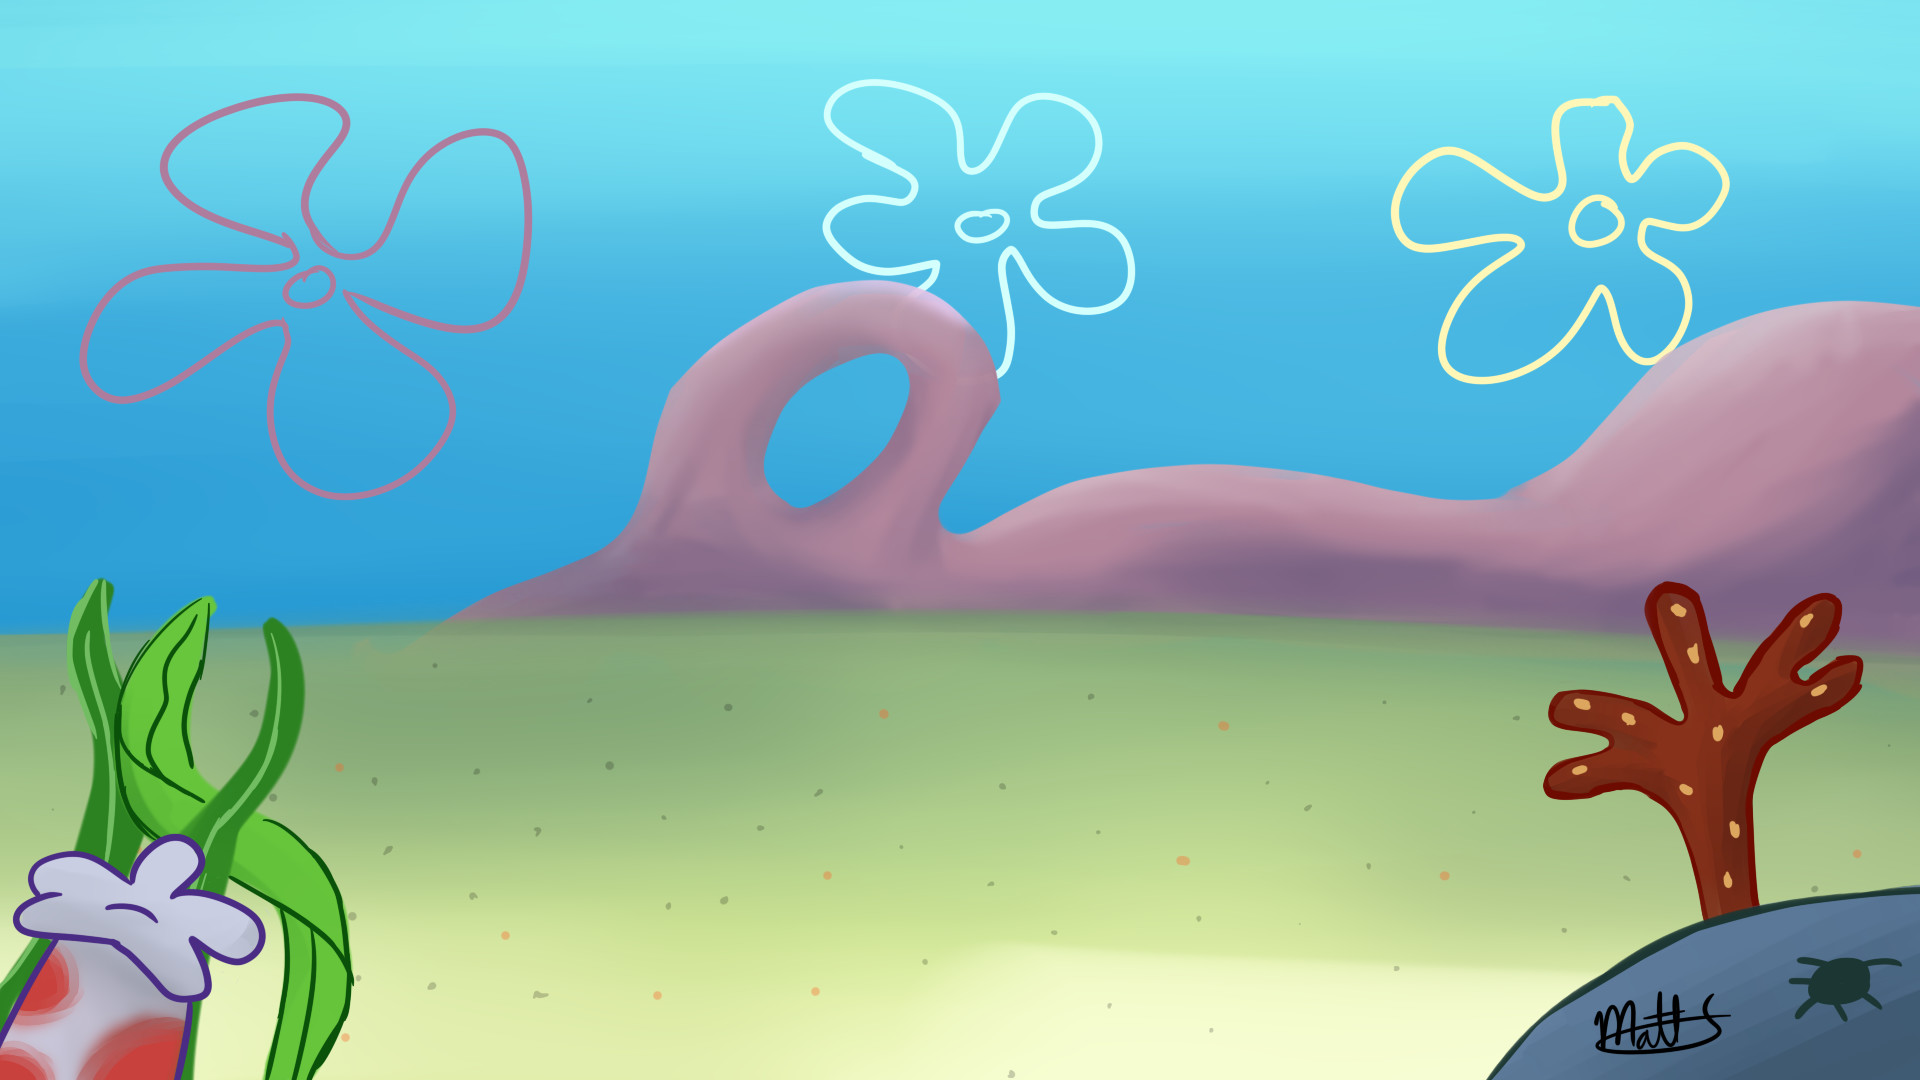 1920x1080 Spongebob background thing by FluffyMystic Spongebob background thing by  FluffyMystic